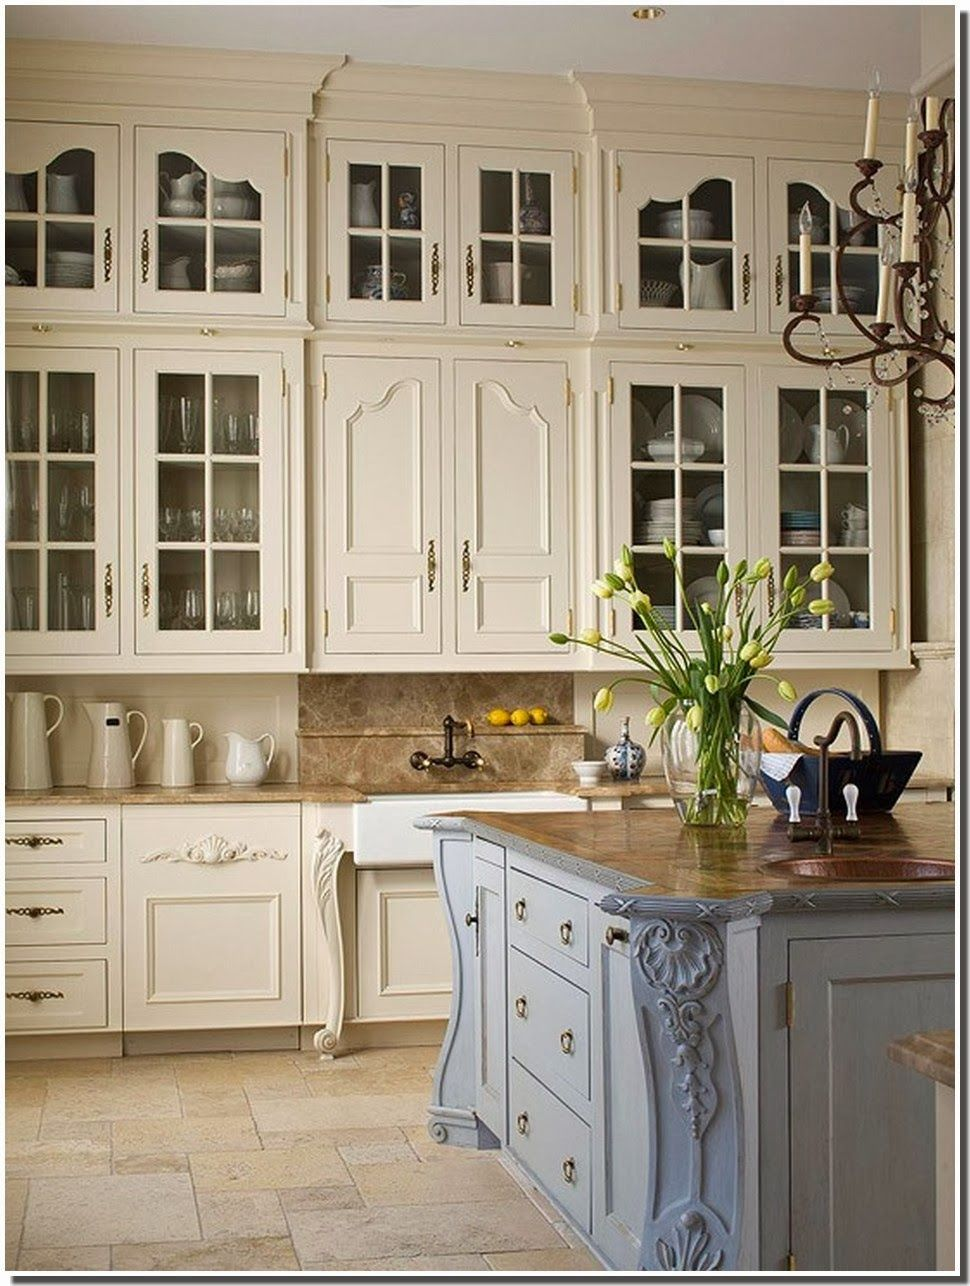 french country kitchen cuisine rustique country kitchen designs french country kitchens on kitchen remodel french country id=47566